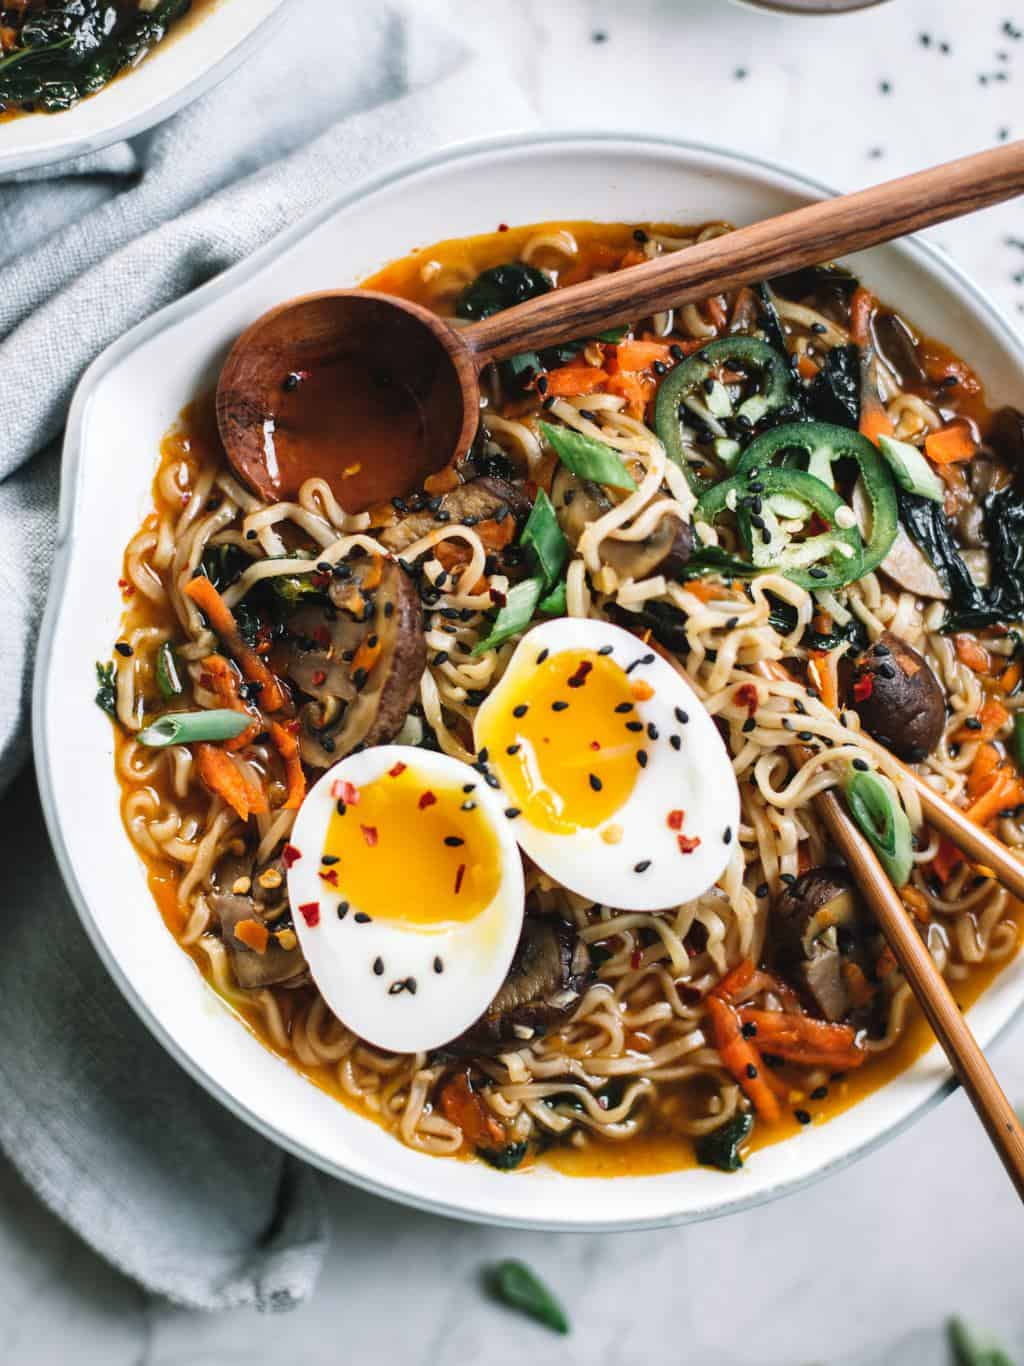 Easy homemade healthy ramen bowls topped with soft boiled eggs.